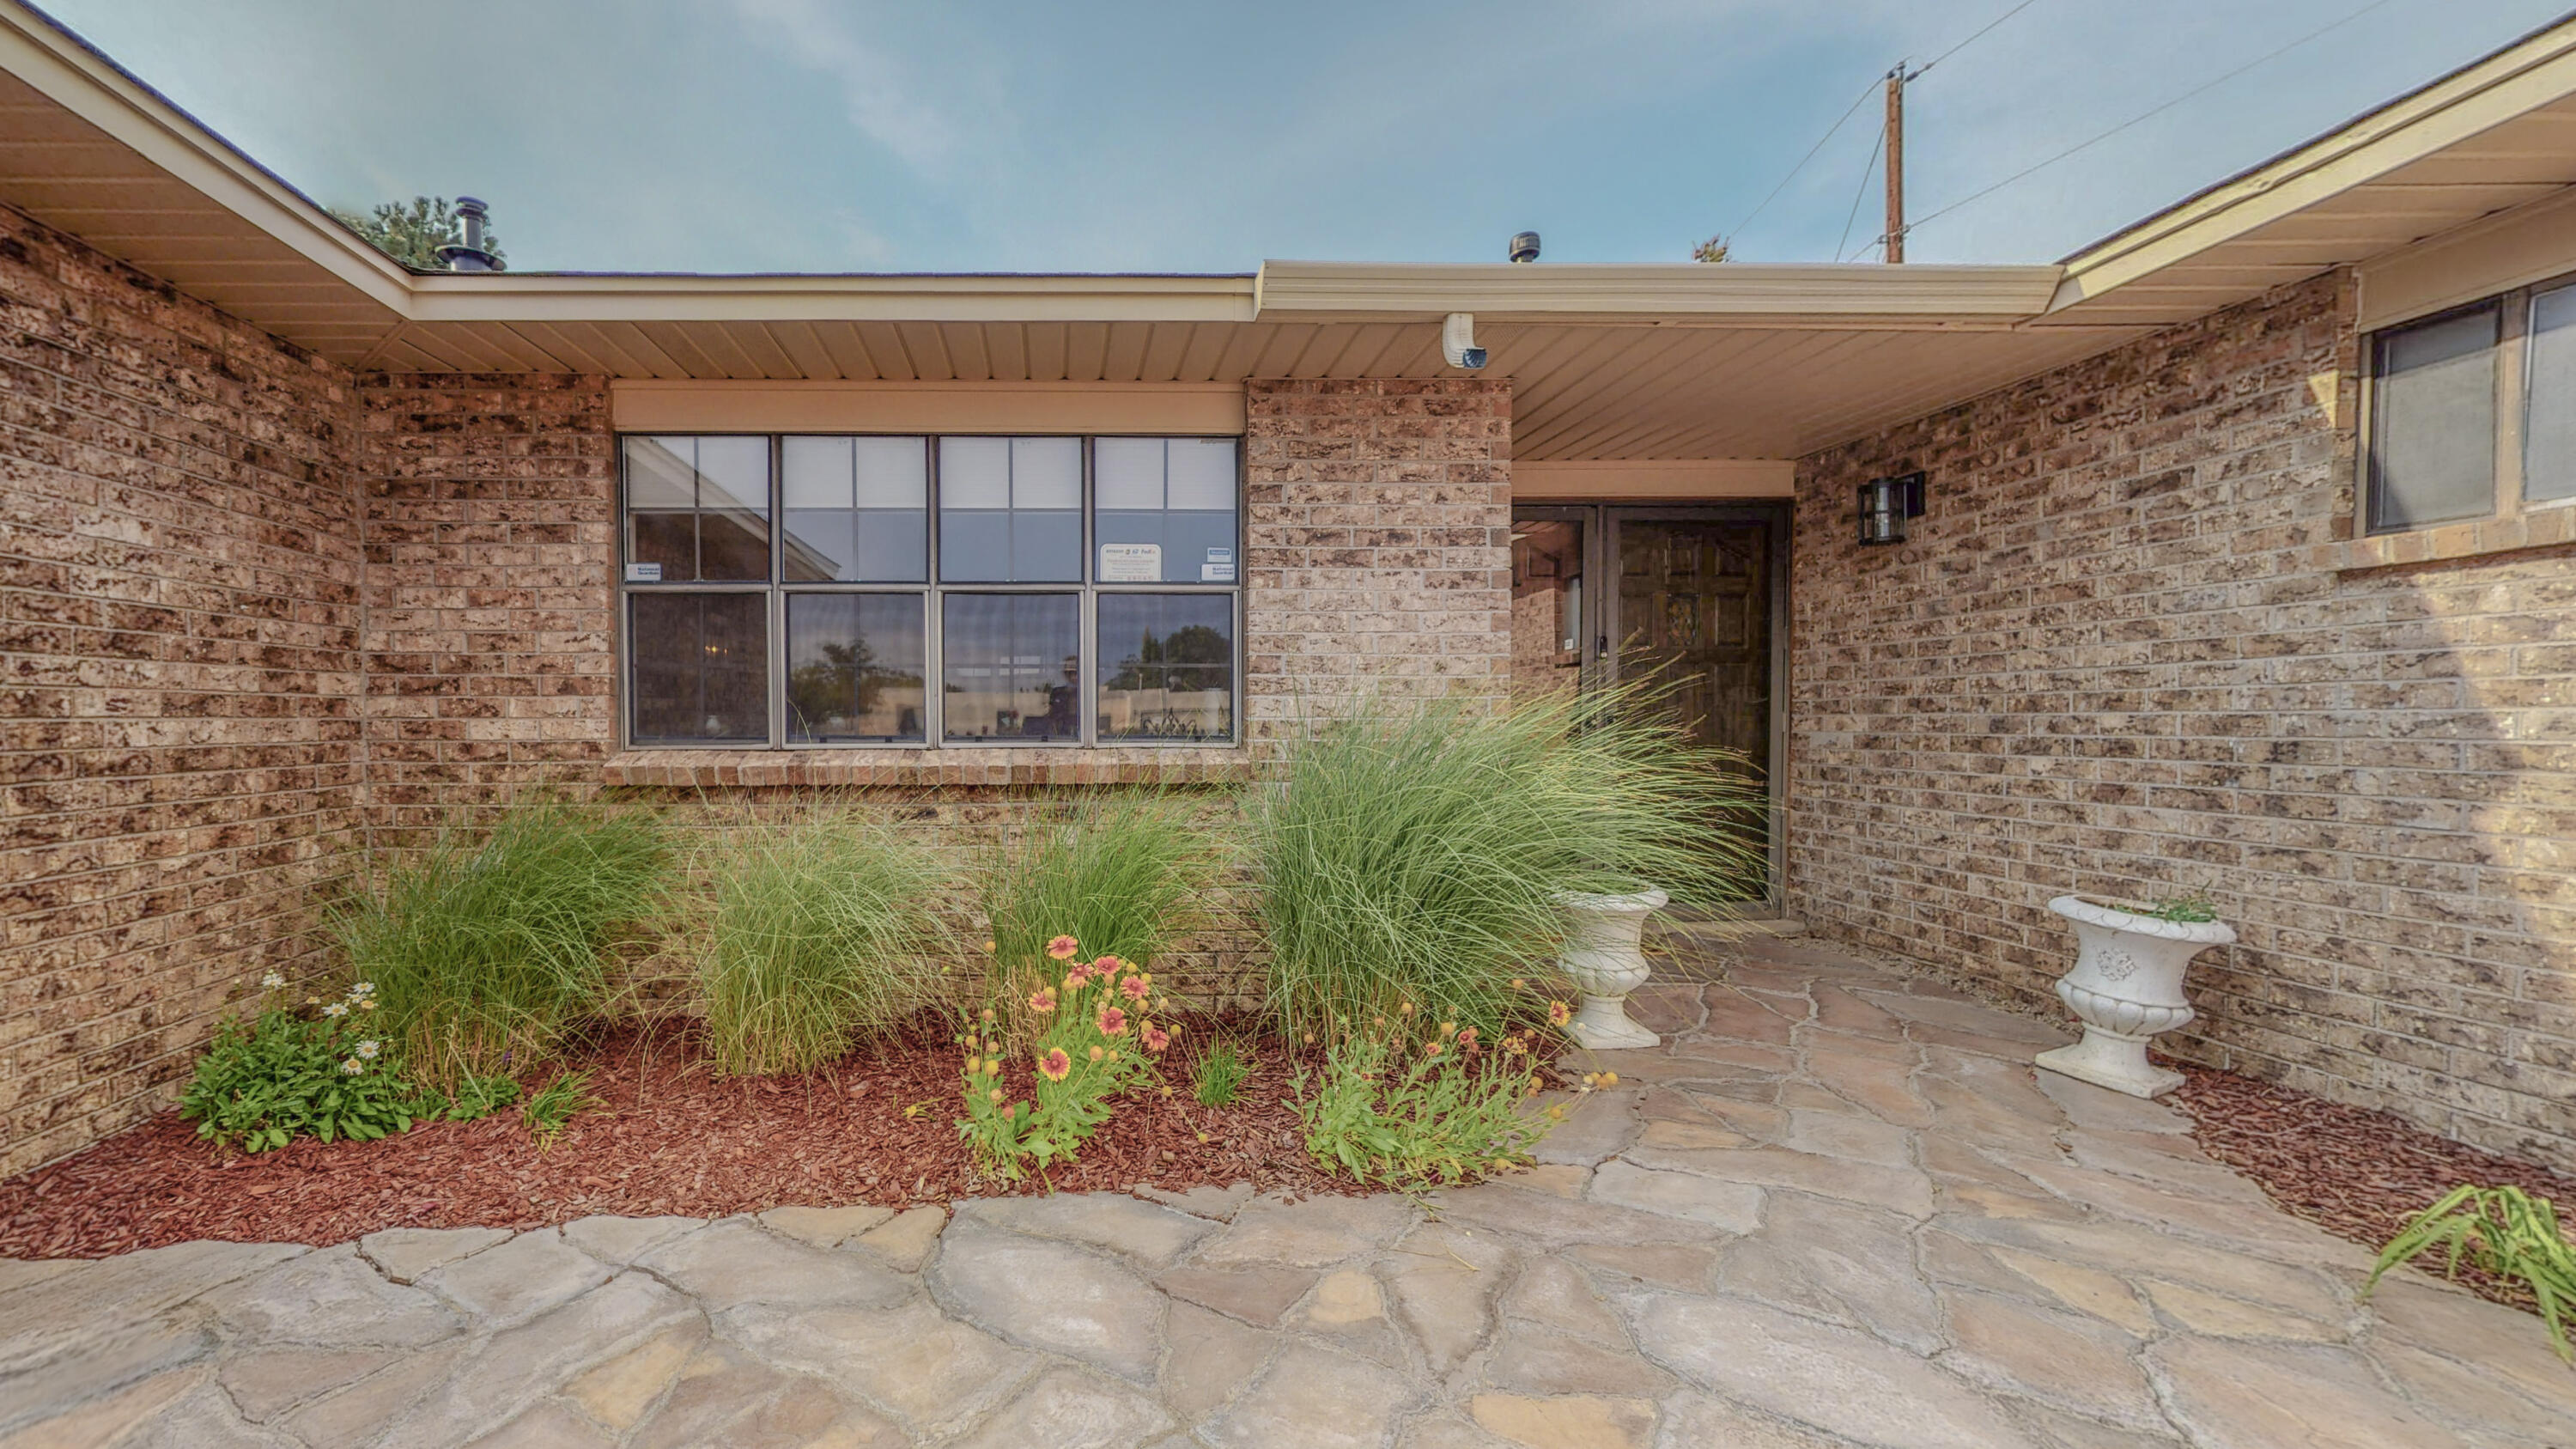 Feels Like Home! Outstanding, hard to find 1-Story, Brick Home is nearly 2,500 SF, on a 1/4 Acre Homesite. Nestled in the Foothills,  this ''Must See'' has 4 Bedrooms, 3 Baths, 2-Car Gar.,   Refrigerated A/C, Updated Kitchen & Baths., Granite Countertops, & lots of Hard Surface Flooring. Island-Kitchen has newer Cabinets & High-end Stainless Appliances- inc. the Frig.  Kitchen is Light & Bright & is Wide-Open to the Family Room, making large family gatherings a pleasure. Front of Home features a Gated Courtyard, Lovely Landscaping & Roses, & a Side-yard big enough to park an RV. Backyard has large Covered & Open Patios & Easy-care SW Landscaping. A Large Storage Shed is also inc. This Impressive Home has been Very Well Maintained, & You Won't be Disappointed!